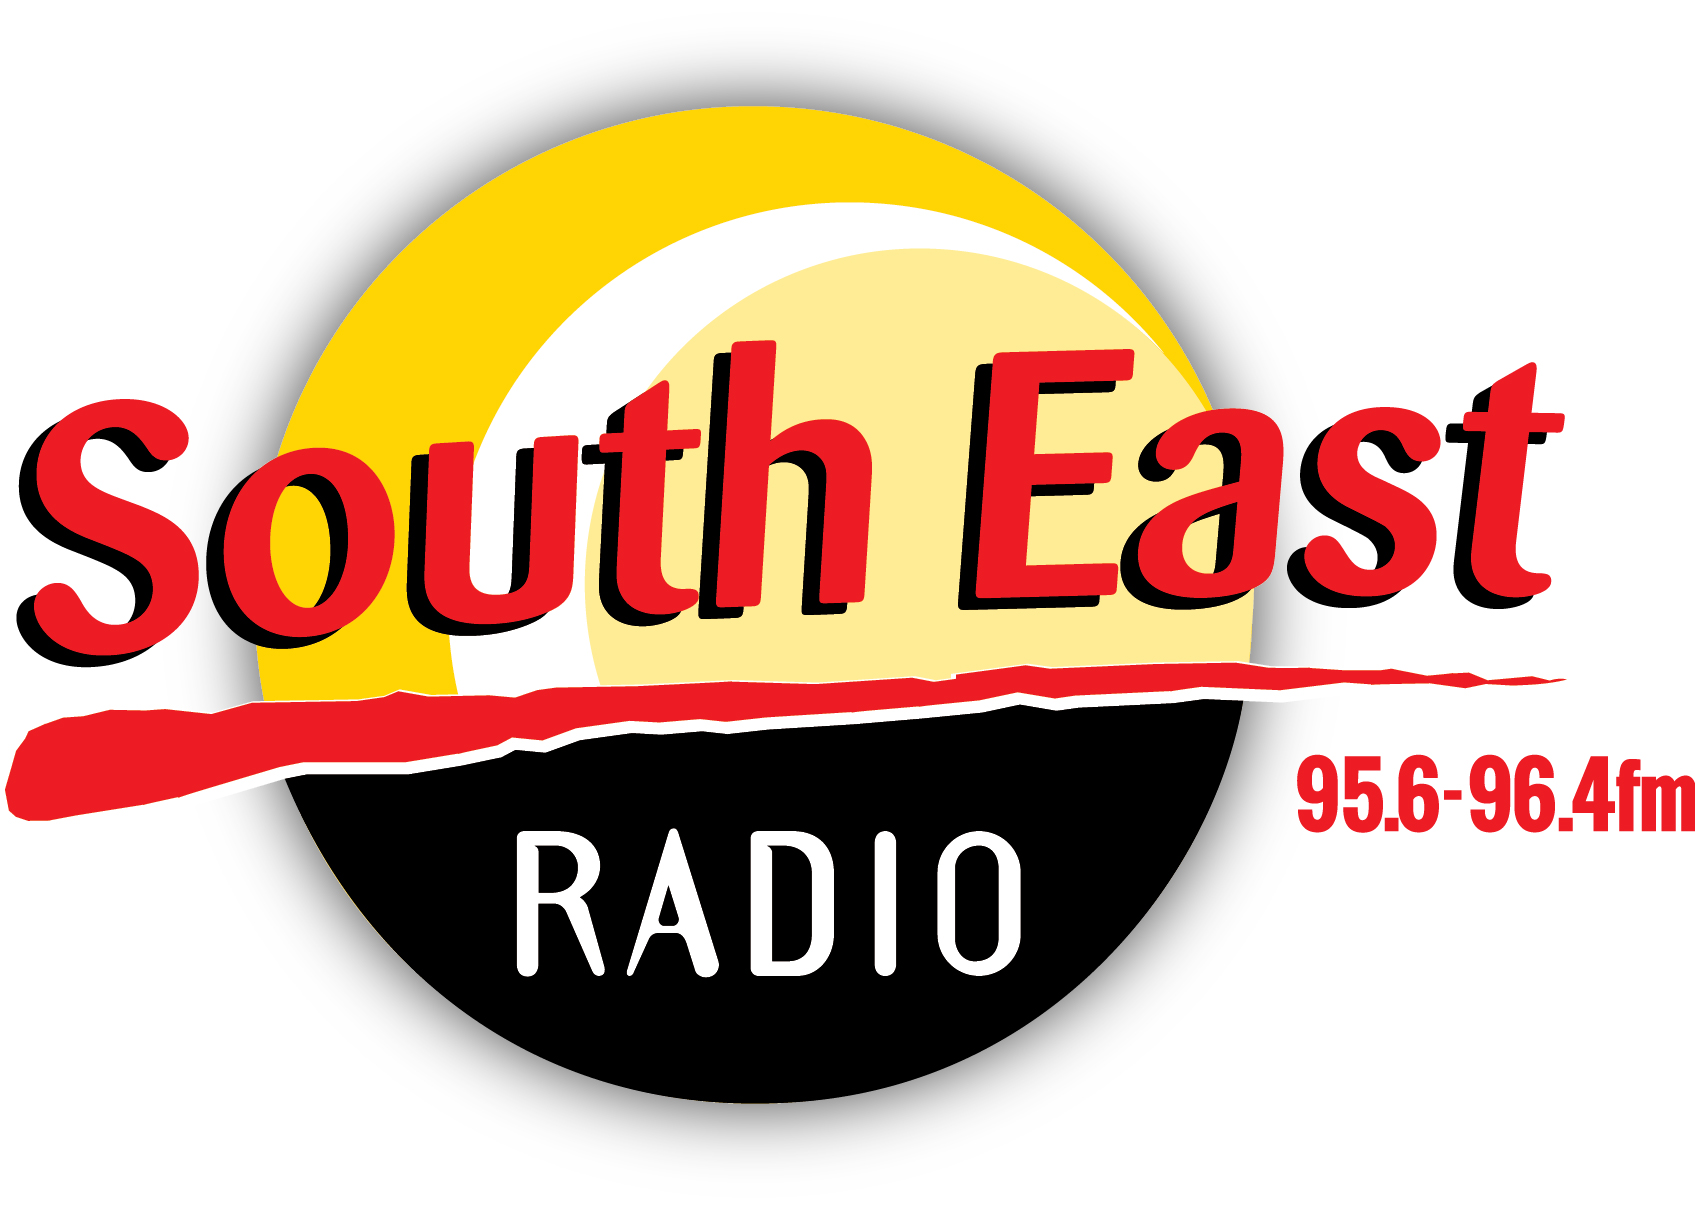 South East Radio Logo